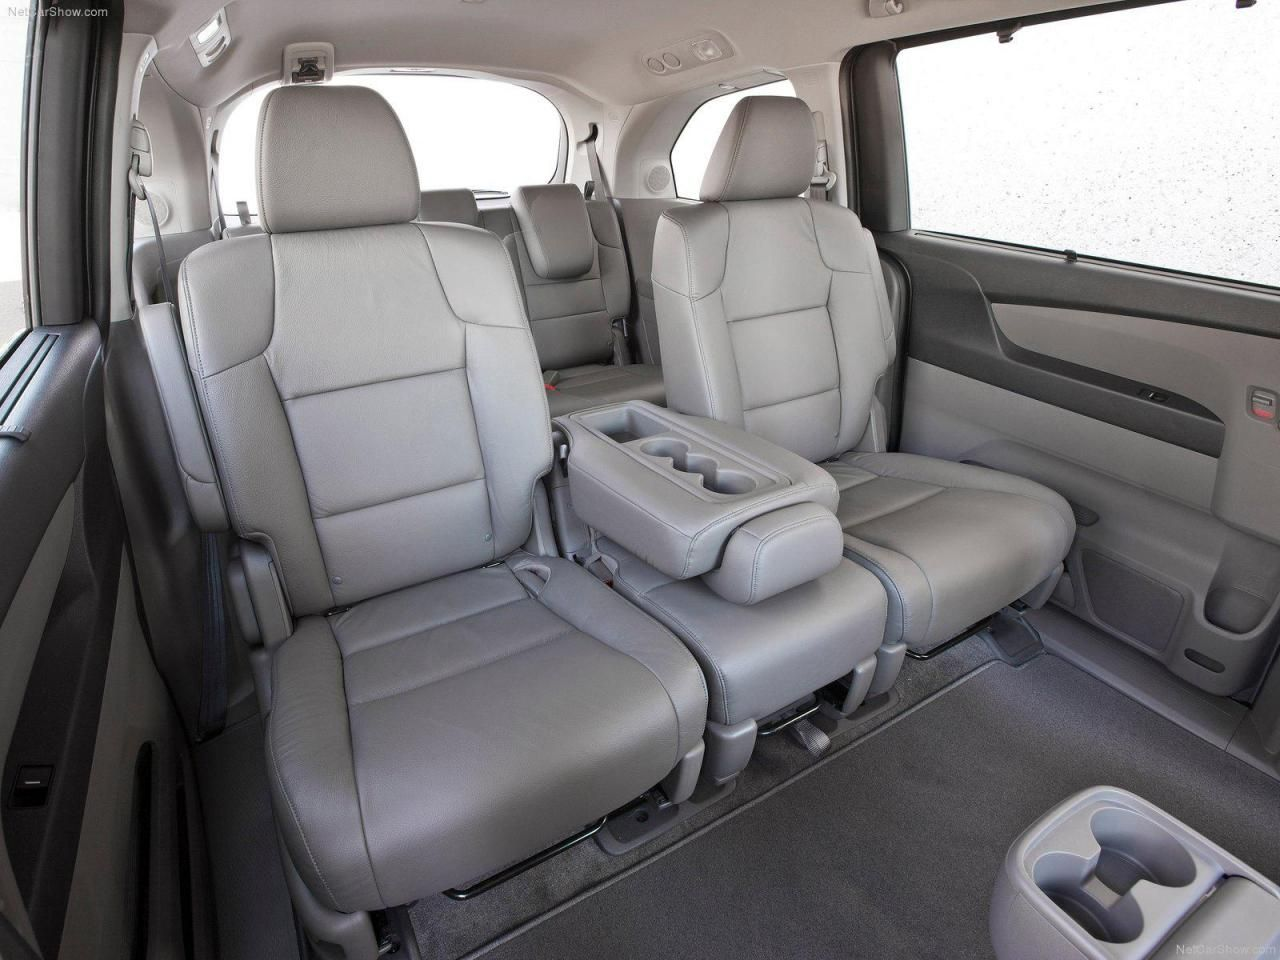 honda odyssey wallpaper picture interior htm of